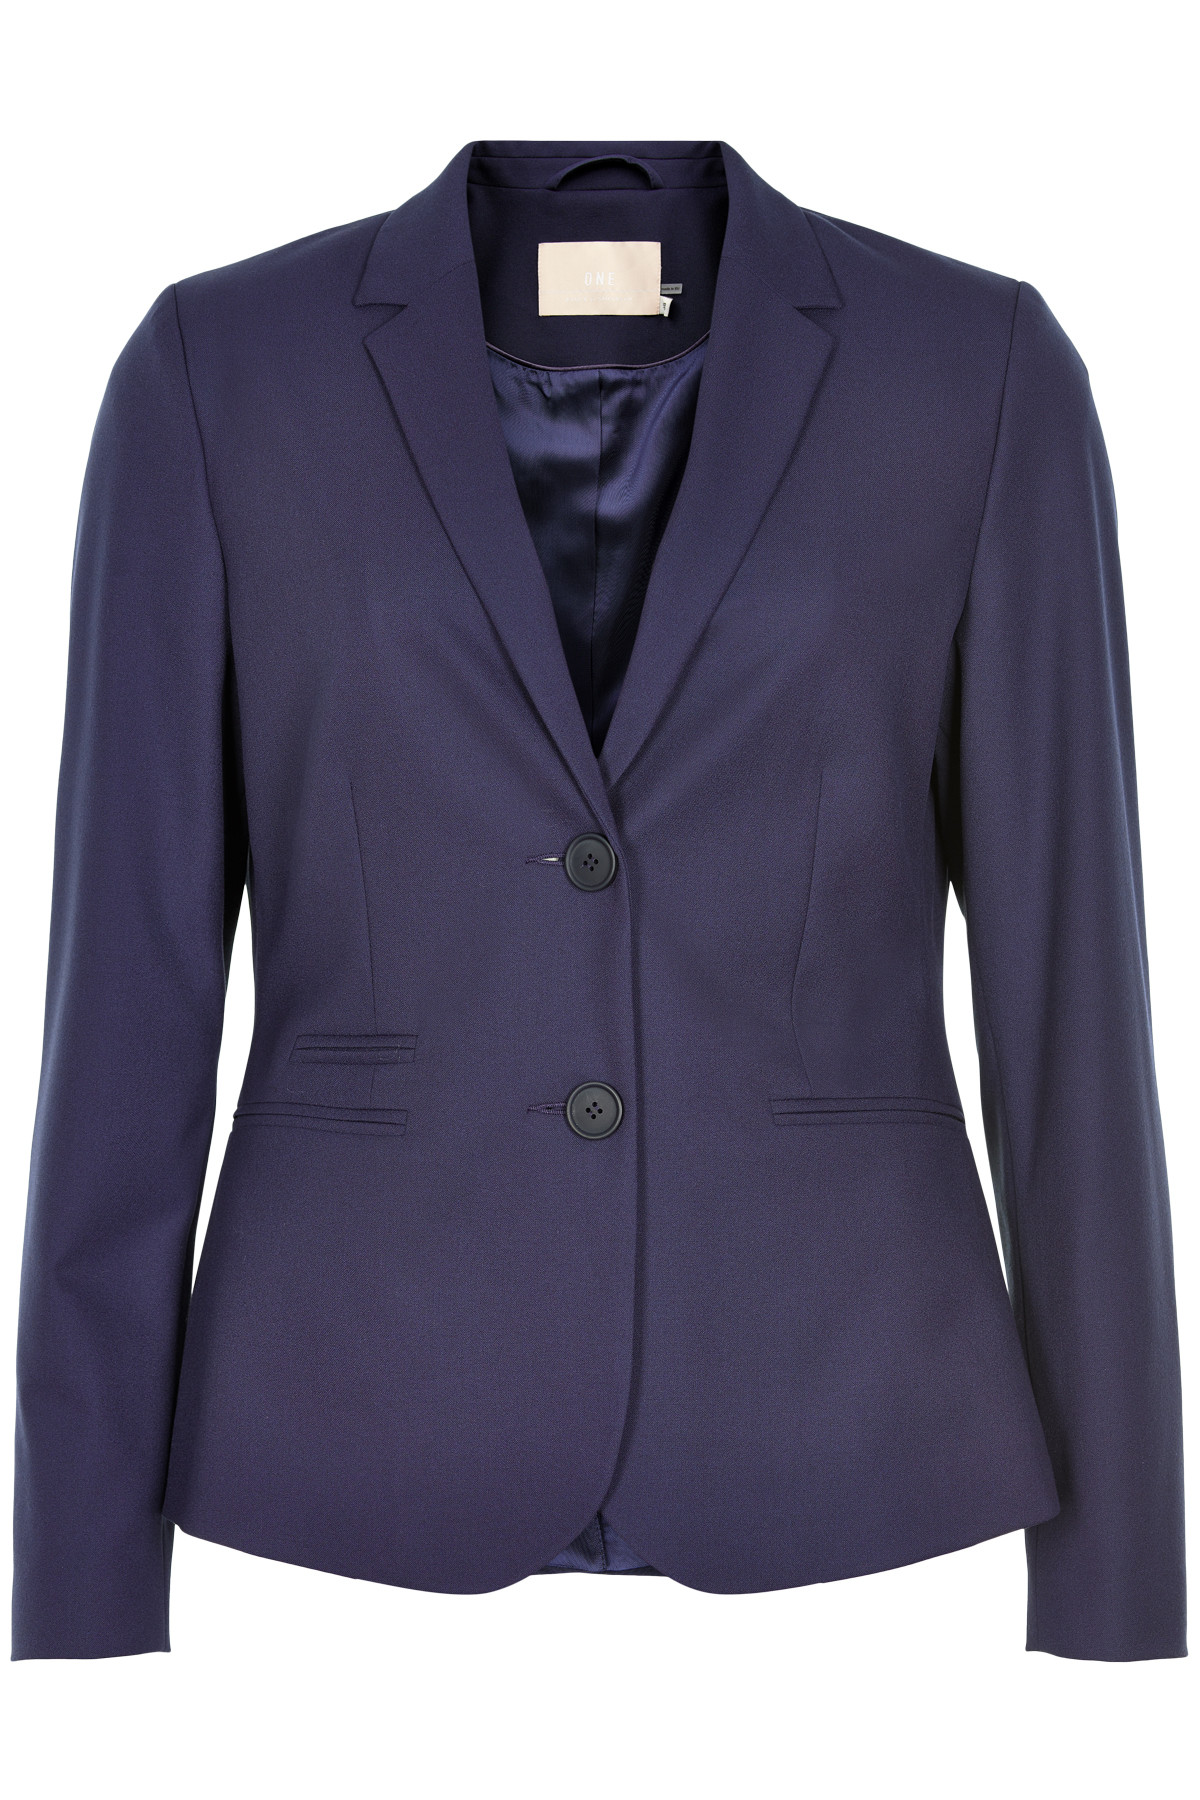 Image of   KAREN BY SIMONSEN SYDNEY BLAZER 10102089 (Dark Blue 40520, 34)